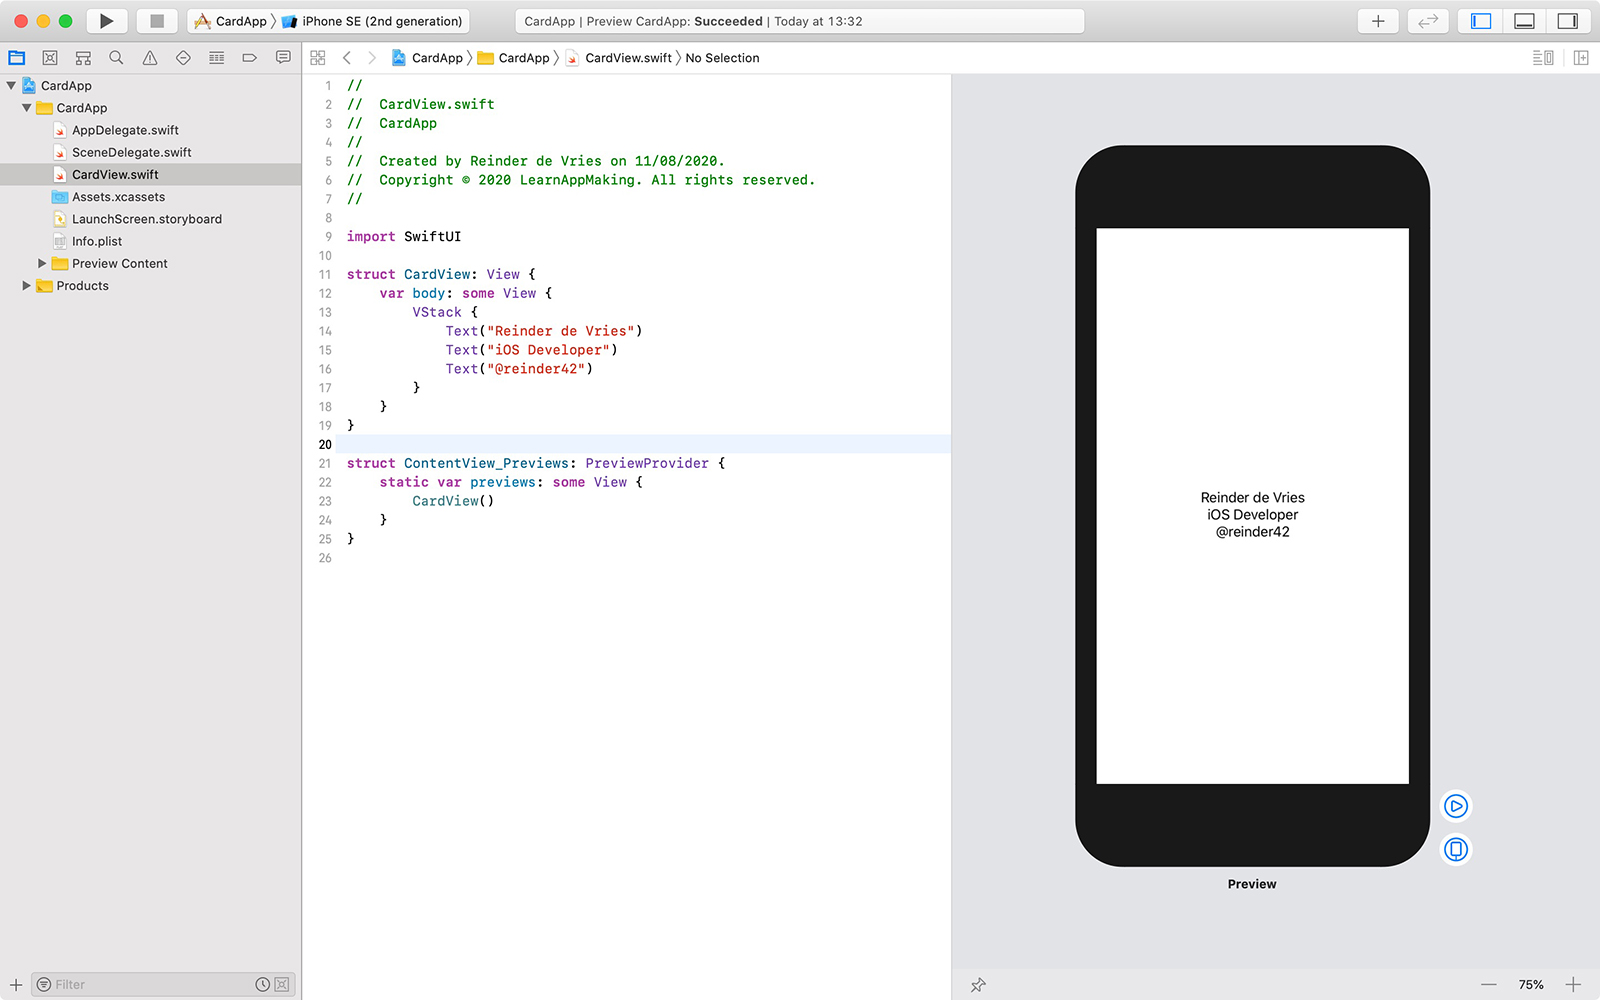 SwiftUI view in Xcode with stack and text views